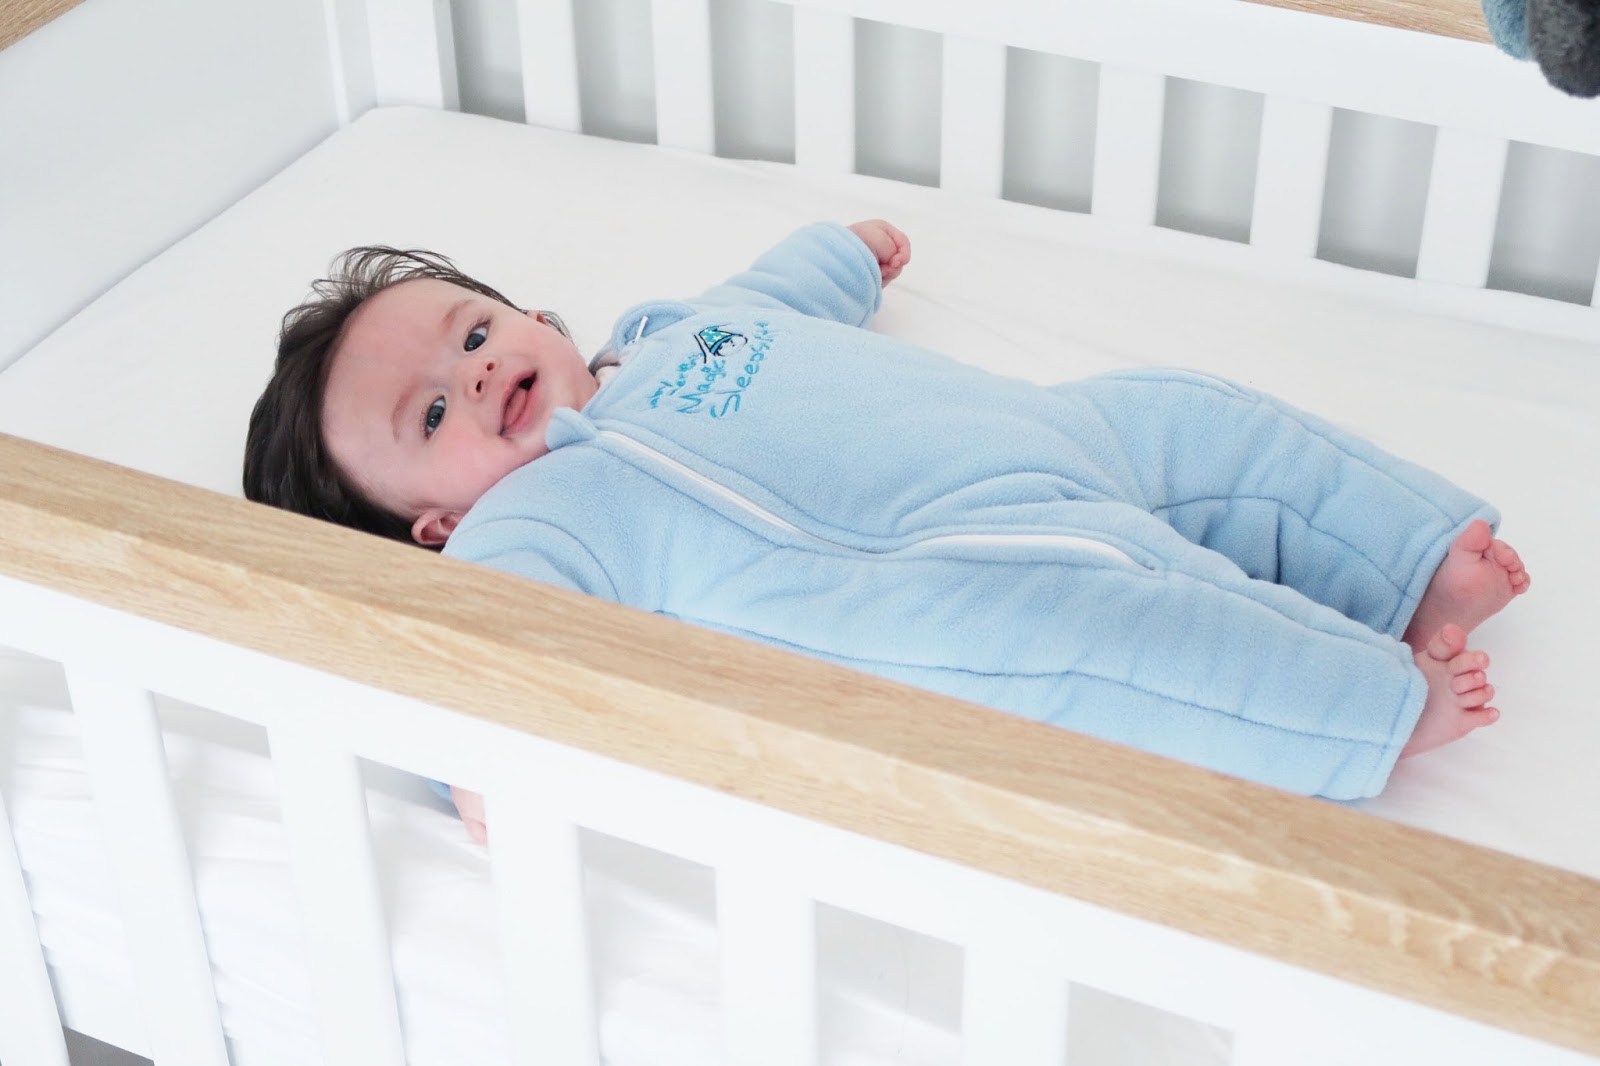 How to Transition baby from swaddle, how to stop swaddling, baby merlins magic sleep suit